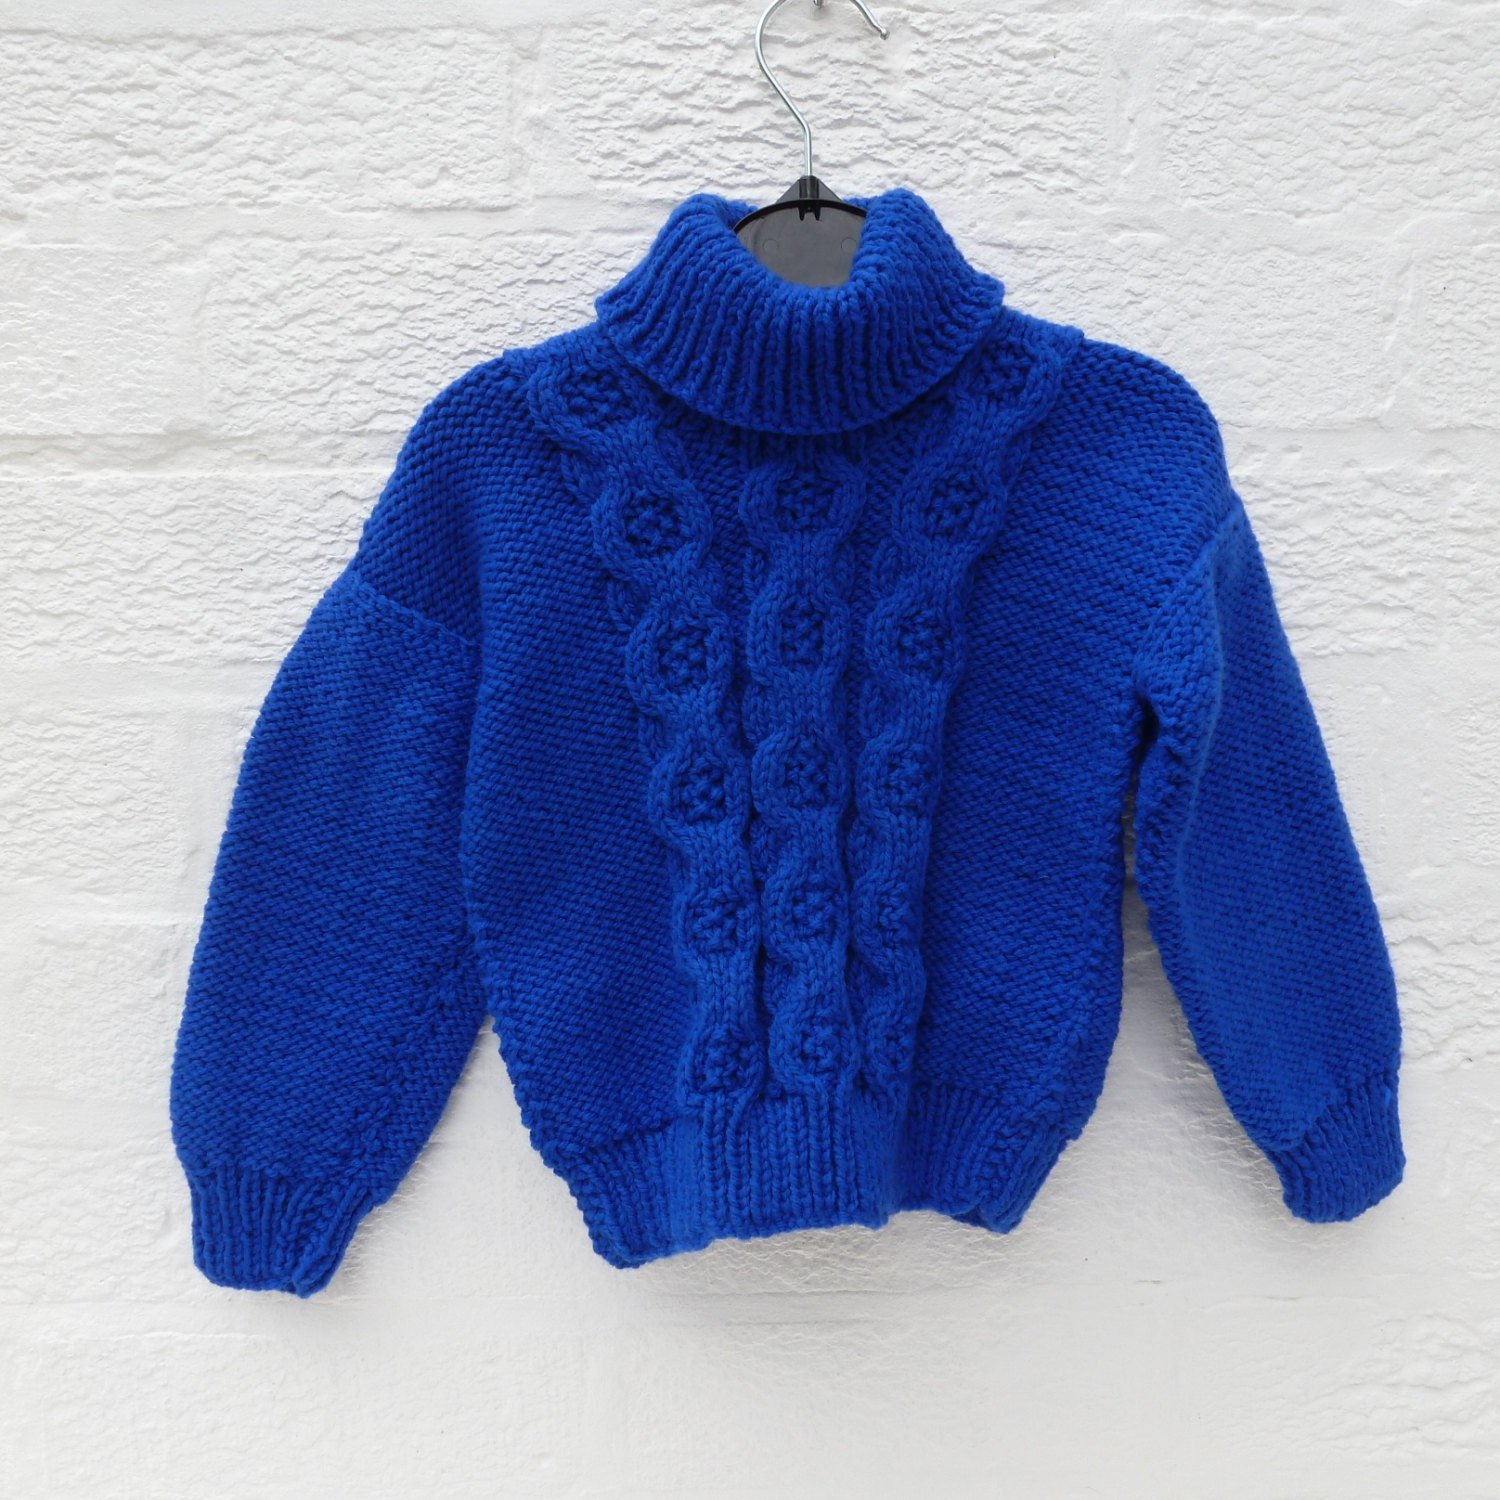 Boys sweater girls handmade blue jumper cable knit top hand